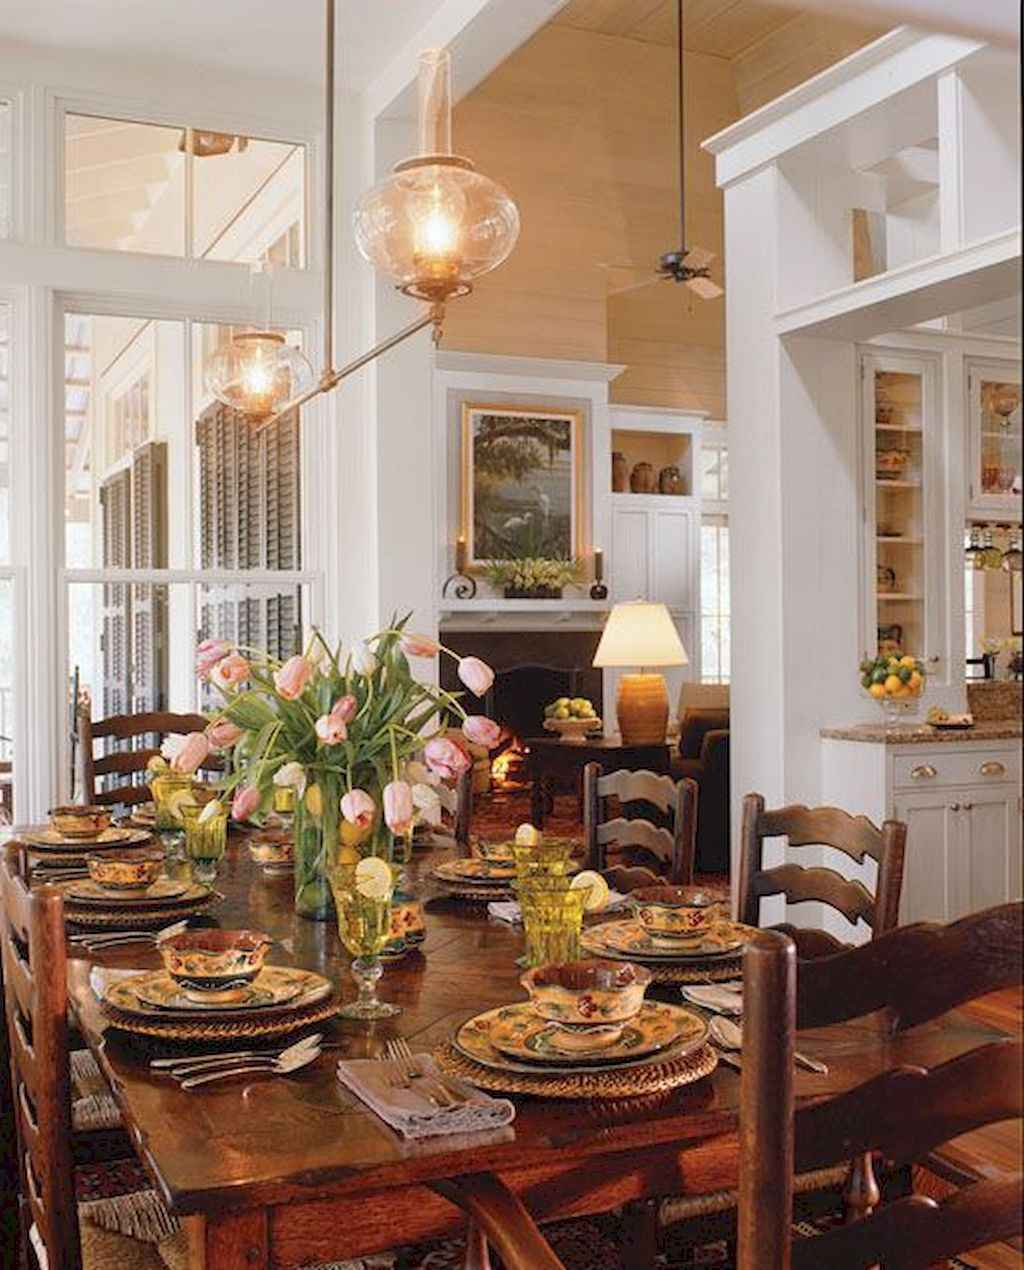 Country Dining Room Decorating Ideas: 42 Beautiful French Country Dining Room Decor Ideas